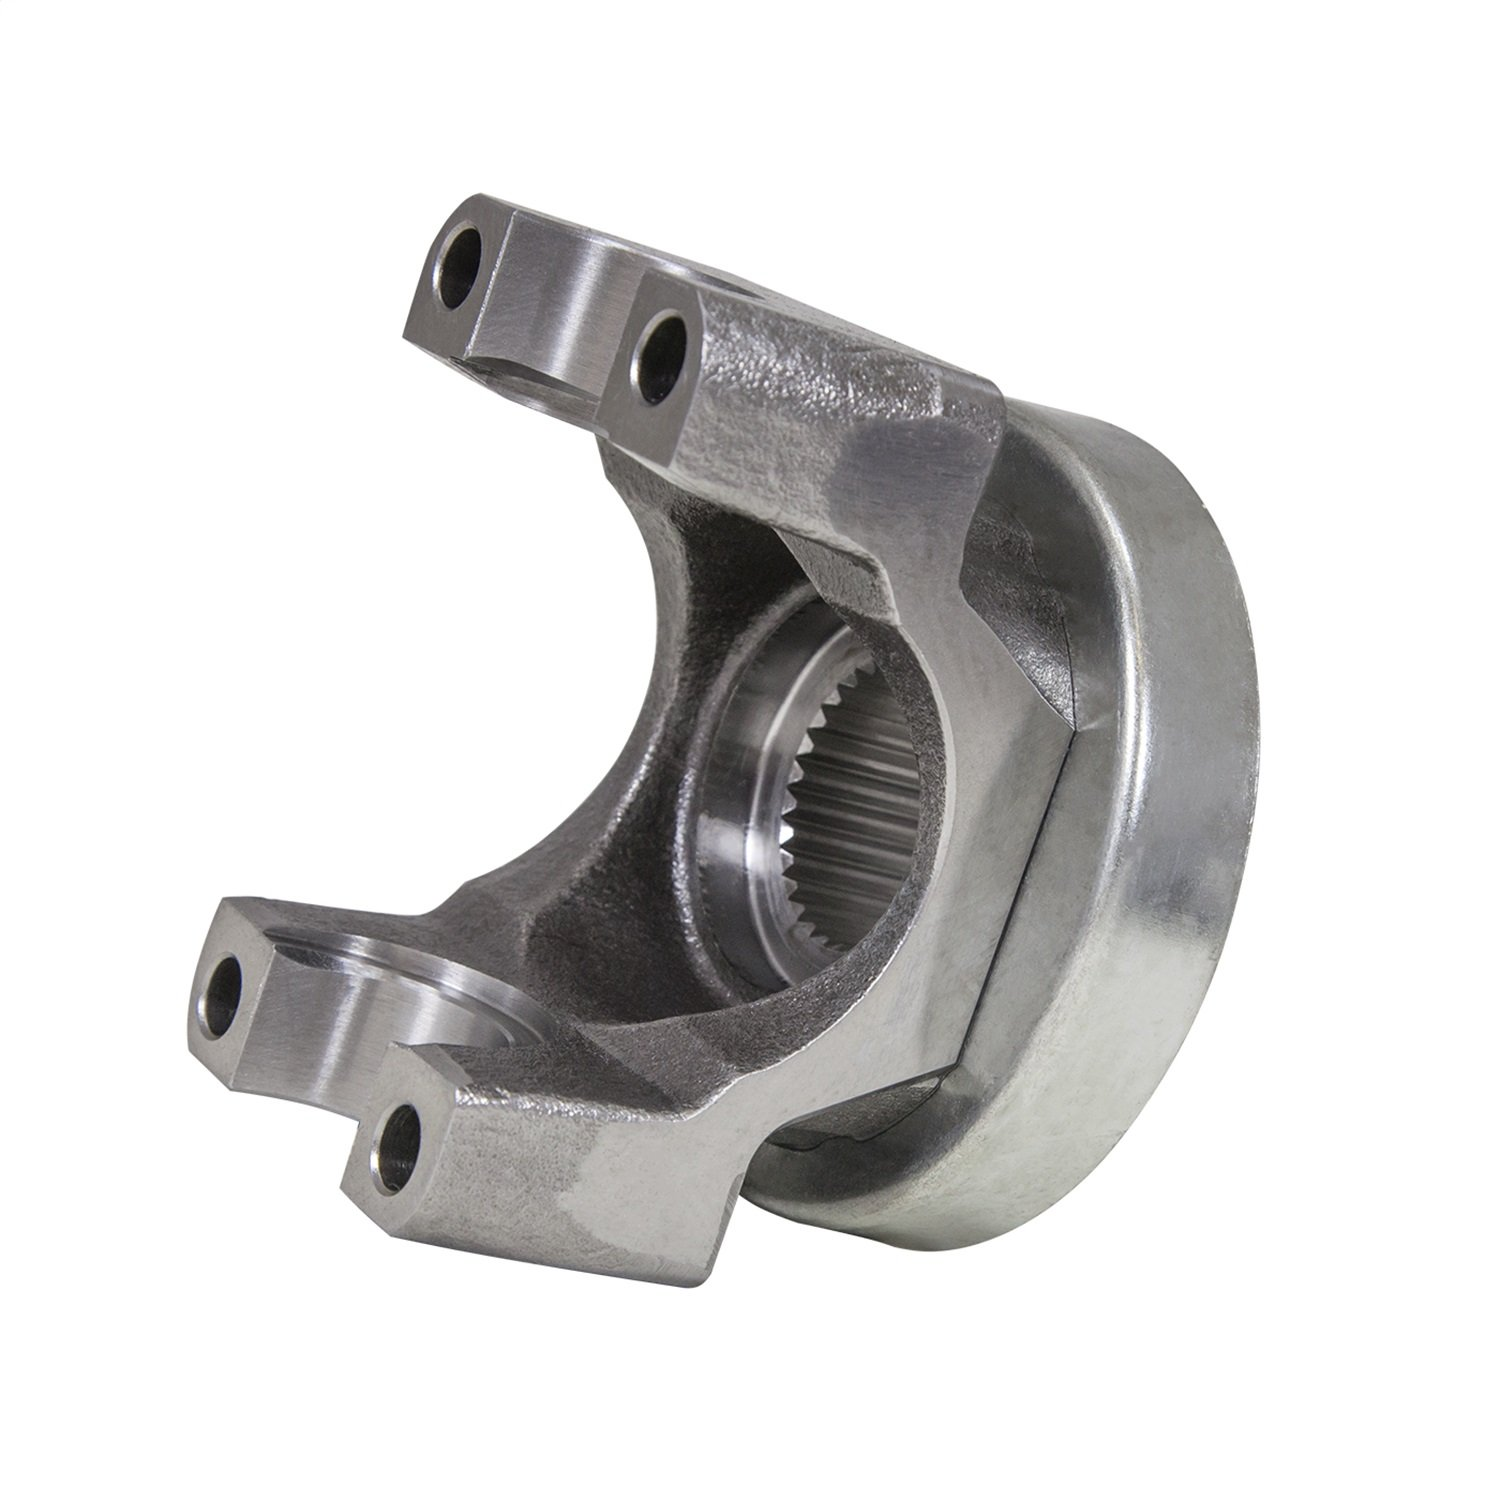 Yukon Gear & Axle (YY GM12470387) Yoke for GM 8.5/8.6 Differential GM (mech 3R) with a U/joint size and triple lip design. 2.556' snap ring span, 1.125' cap diameter. Inside snap ring. 1.125 cap diameter. Inside snap ring.